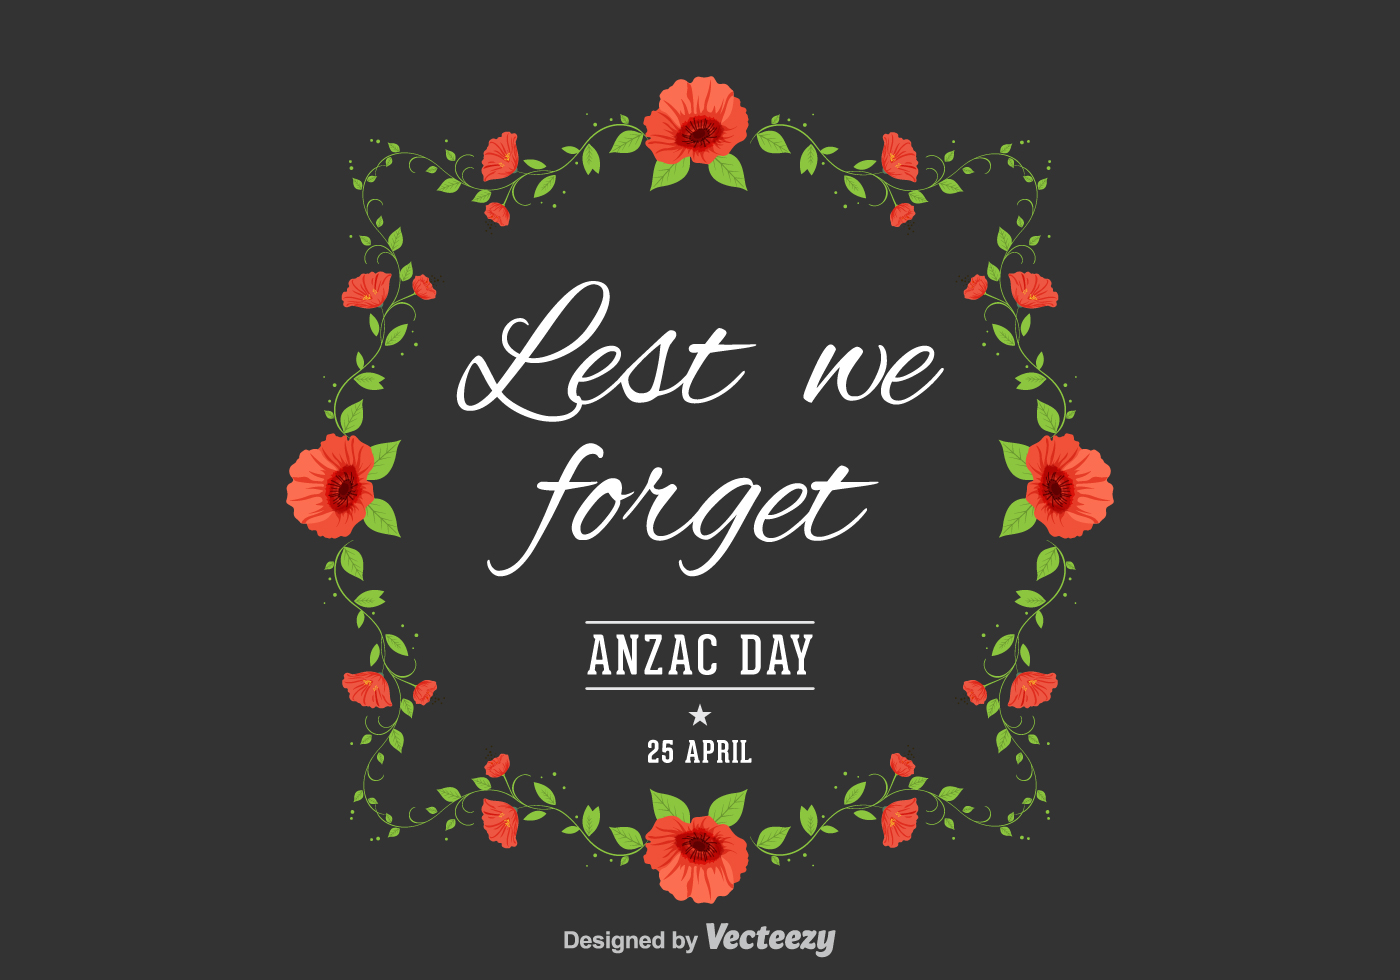 whats open on anzac day - HD1400×980